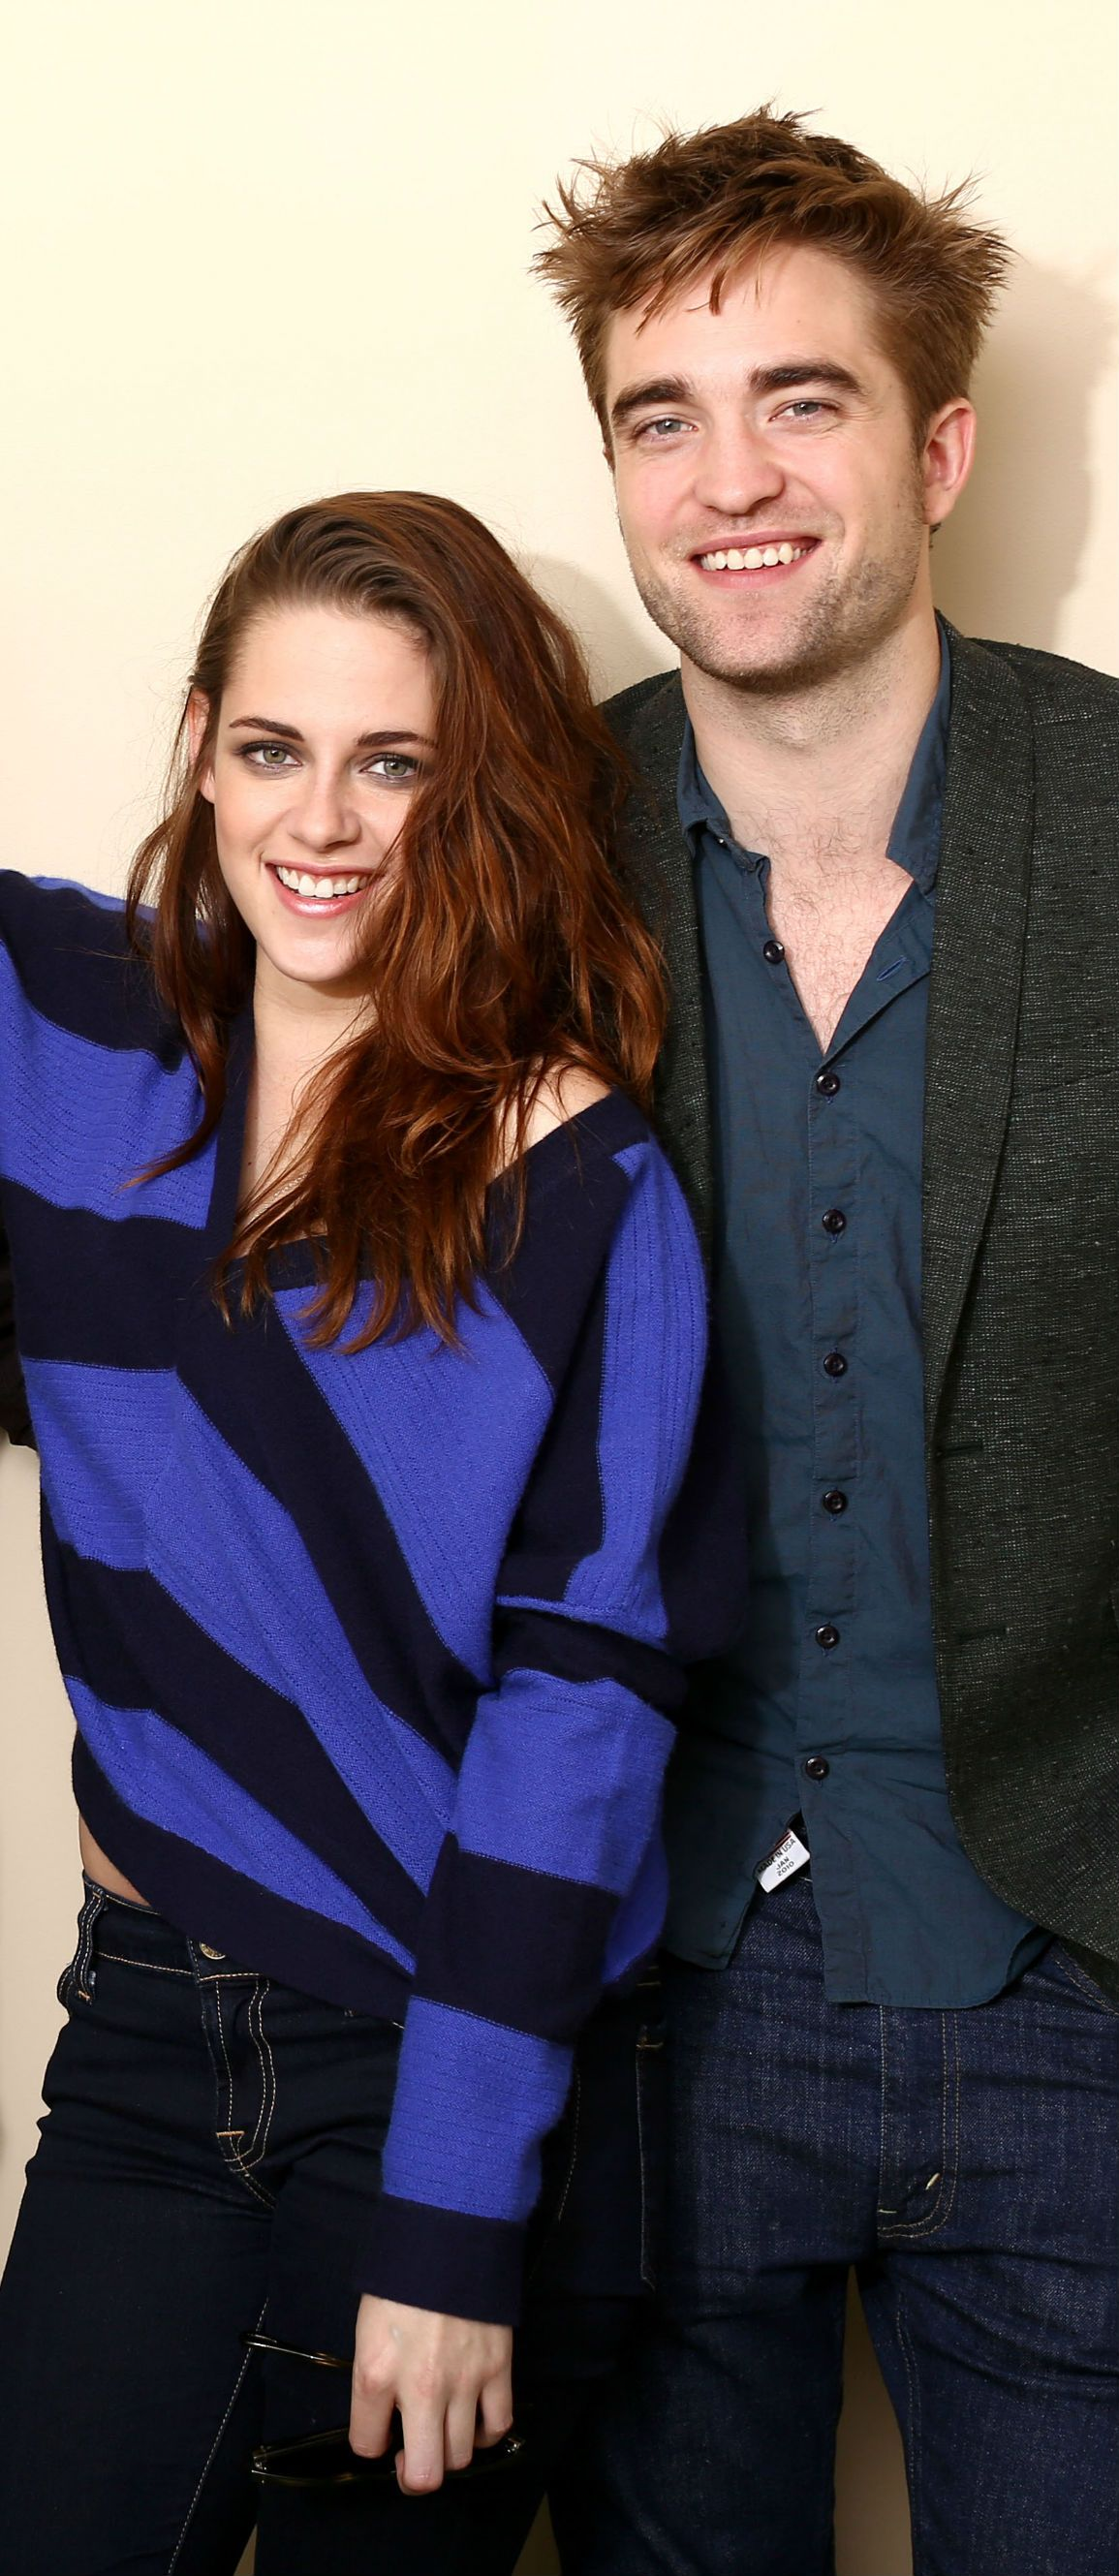 Rob and kristen dating 2012 computer keeps updating when shutting down